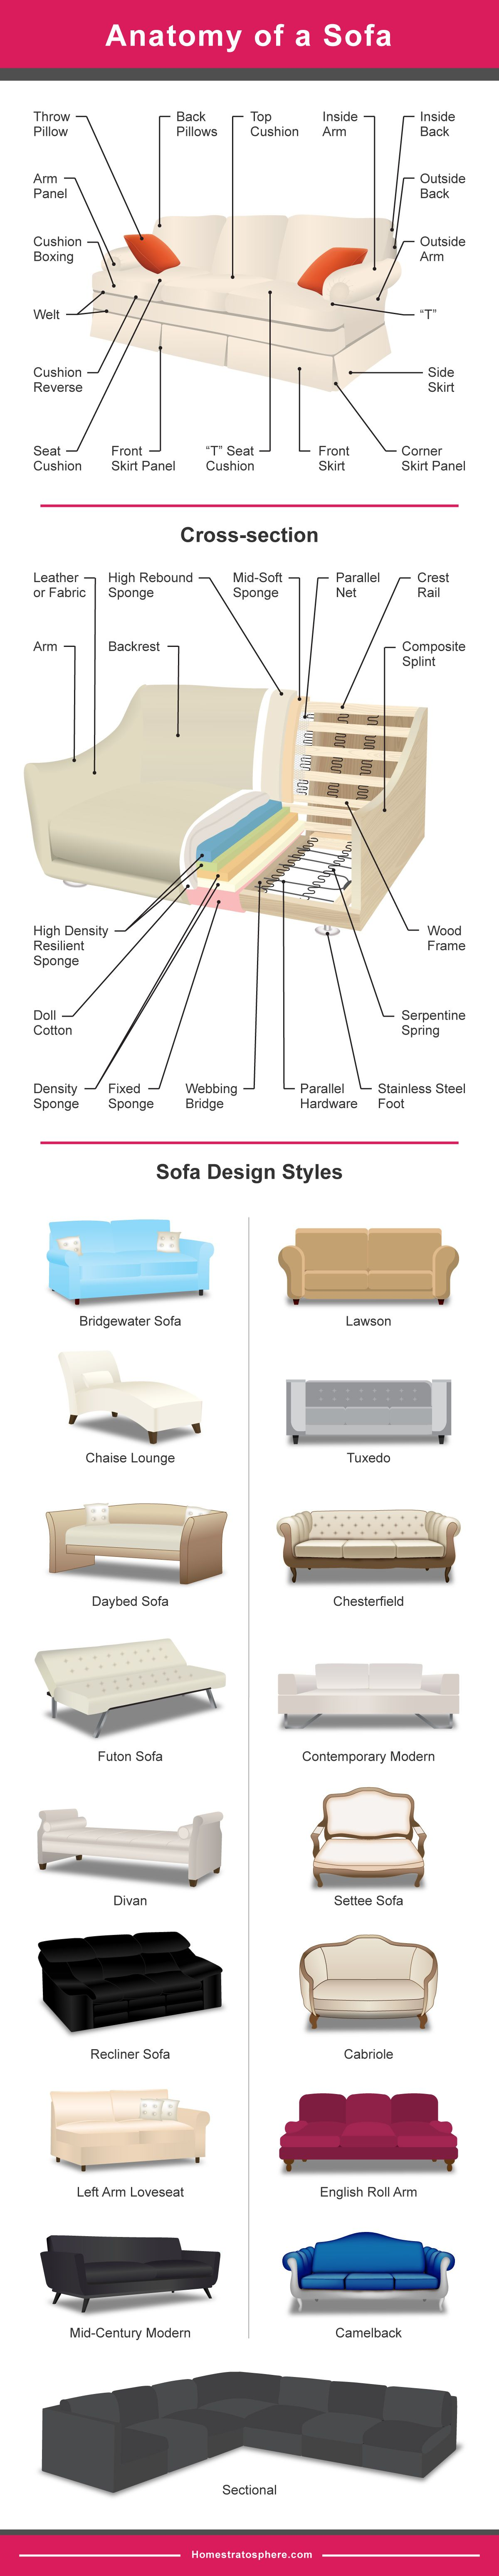 25 Styles Of Sofas Couches Explained With Photos Types Of Sofas Types Of Couches Sofa Styling